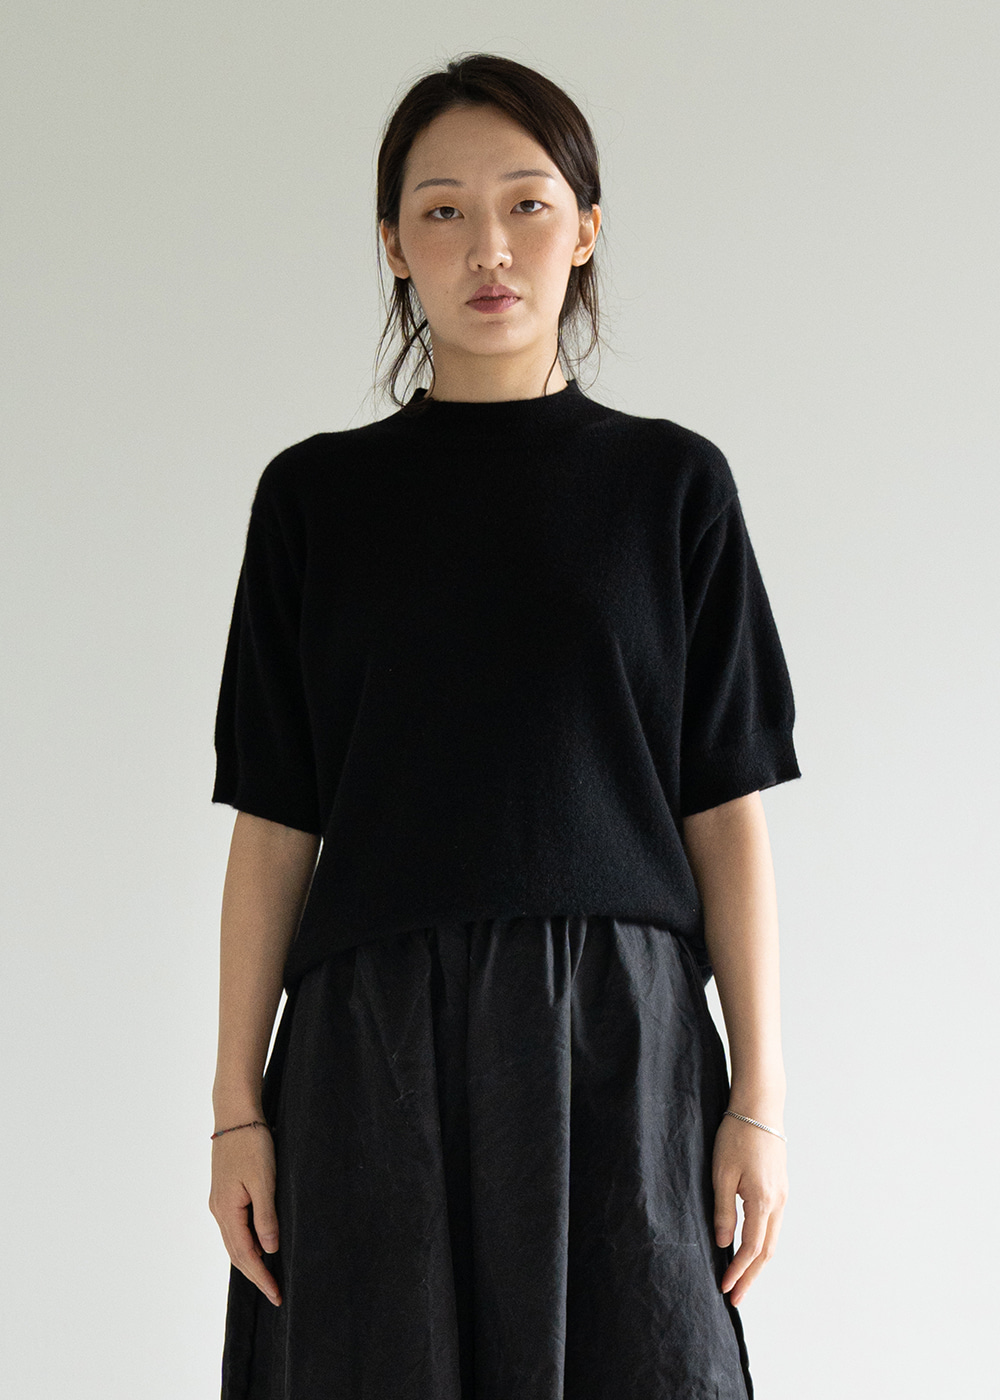 MATISSE CASHMERE KNIT TOP - black